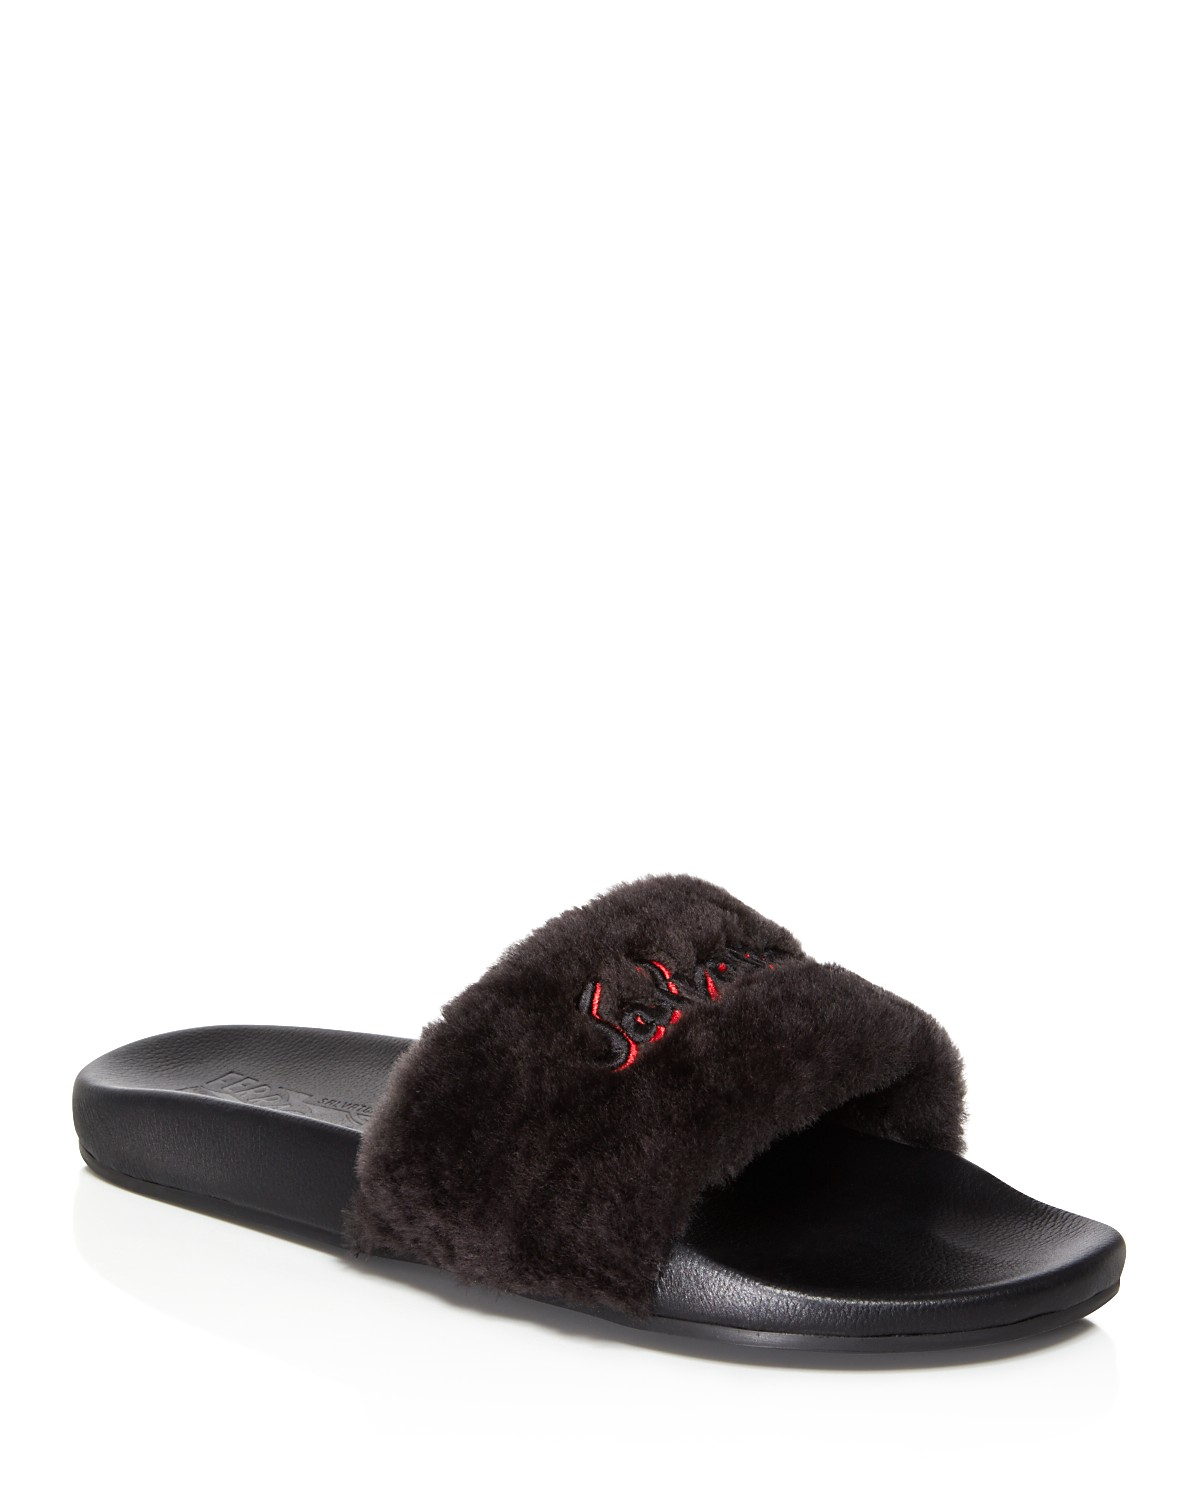 Salvatore Ferragamo Men's Don Shearling Slide Sandals YpIZ1vABJ